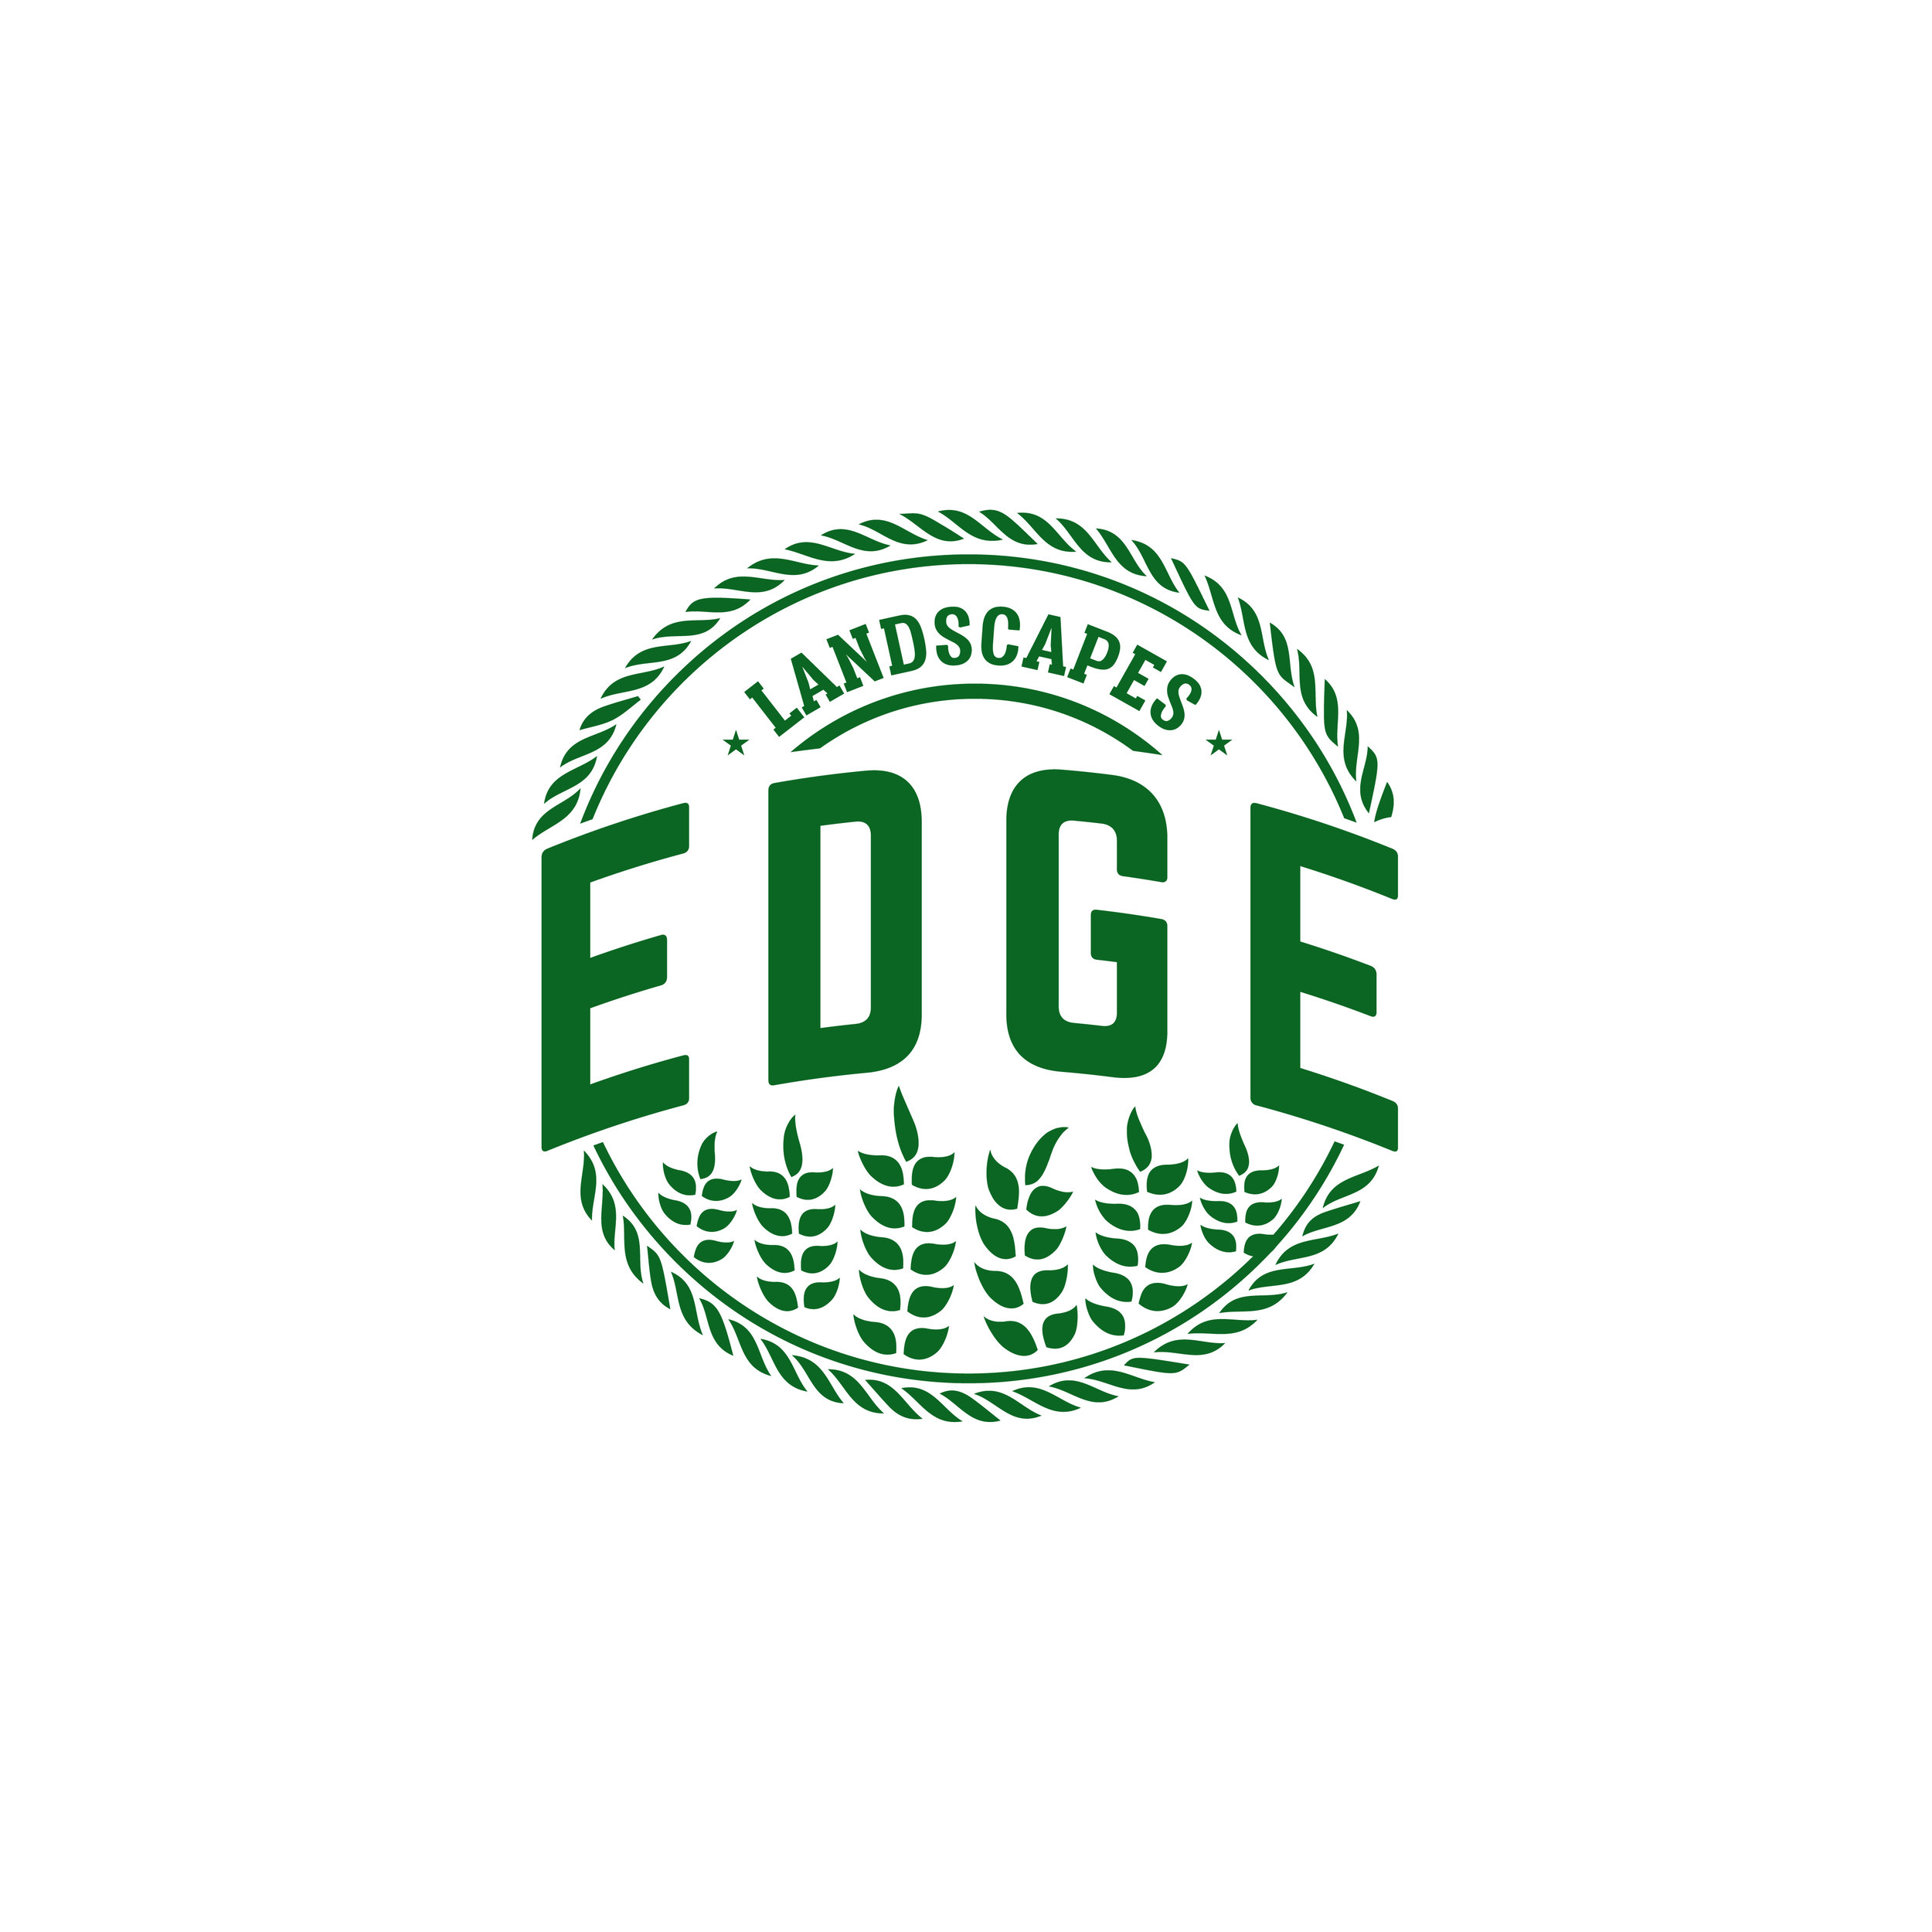 Edge logo design.jpg